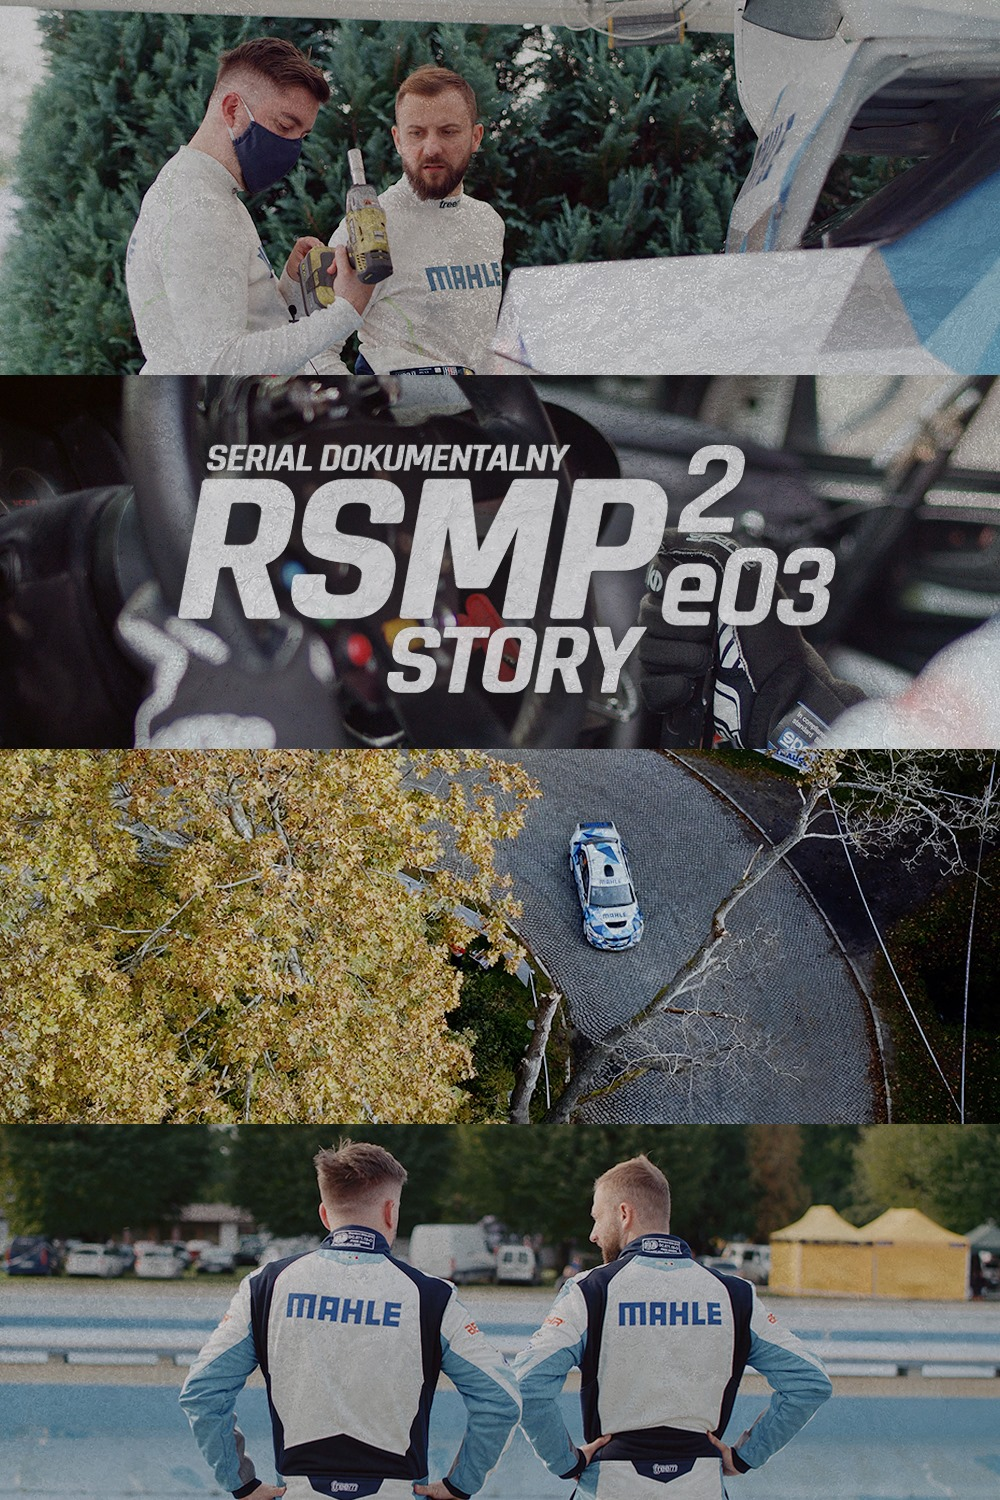 Poster - RSMP STORY s02e03